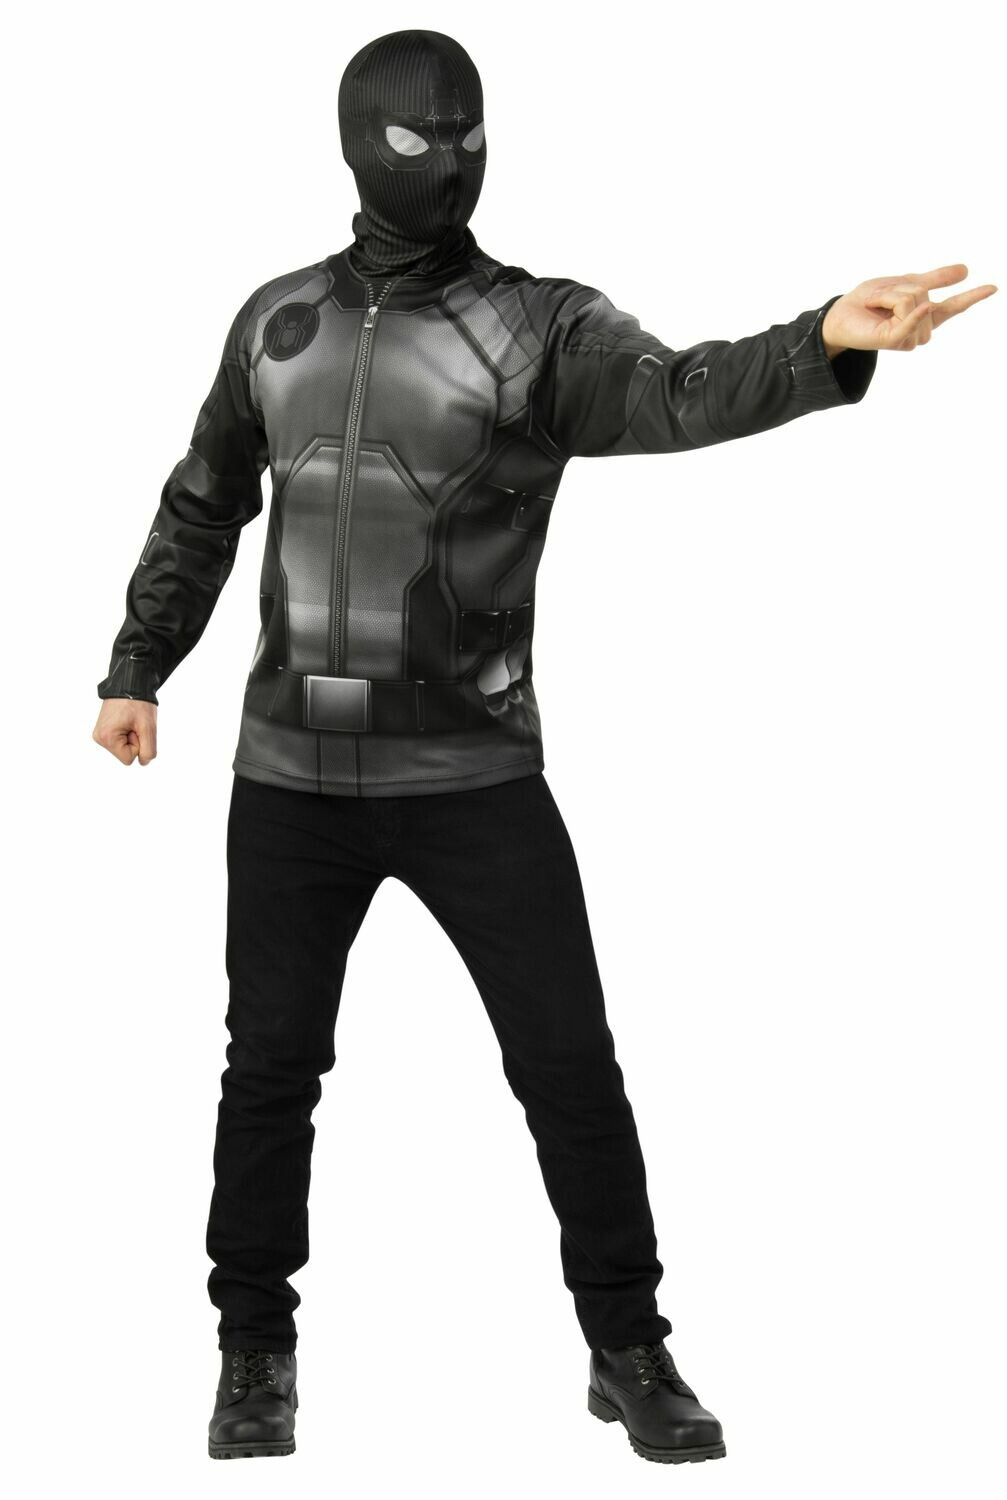 Spider-Man: Far From Home Spider-Man Stealth Black/Gray Suit Costume Top - Adult